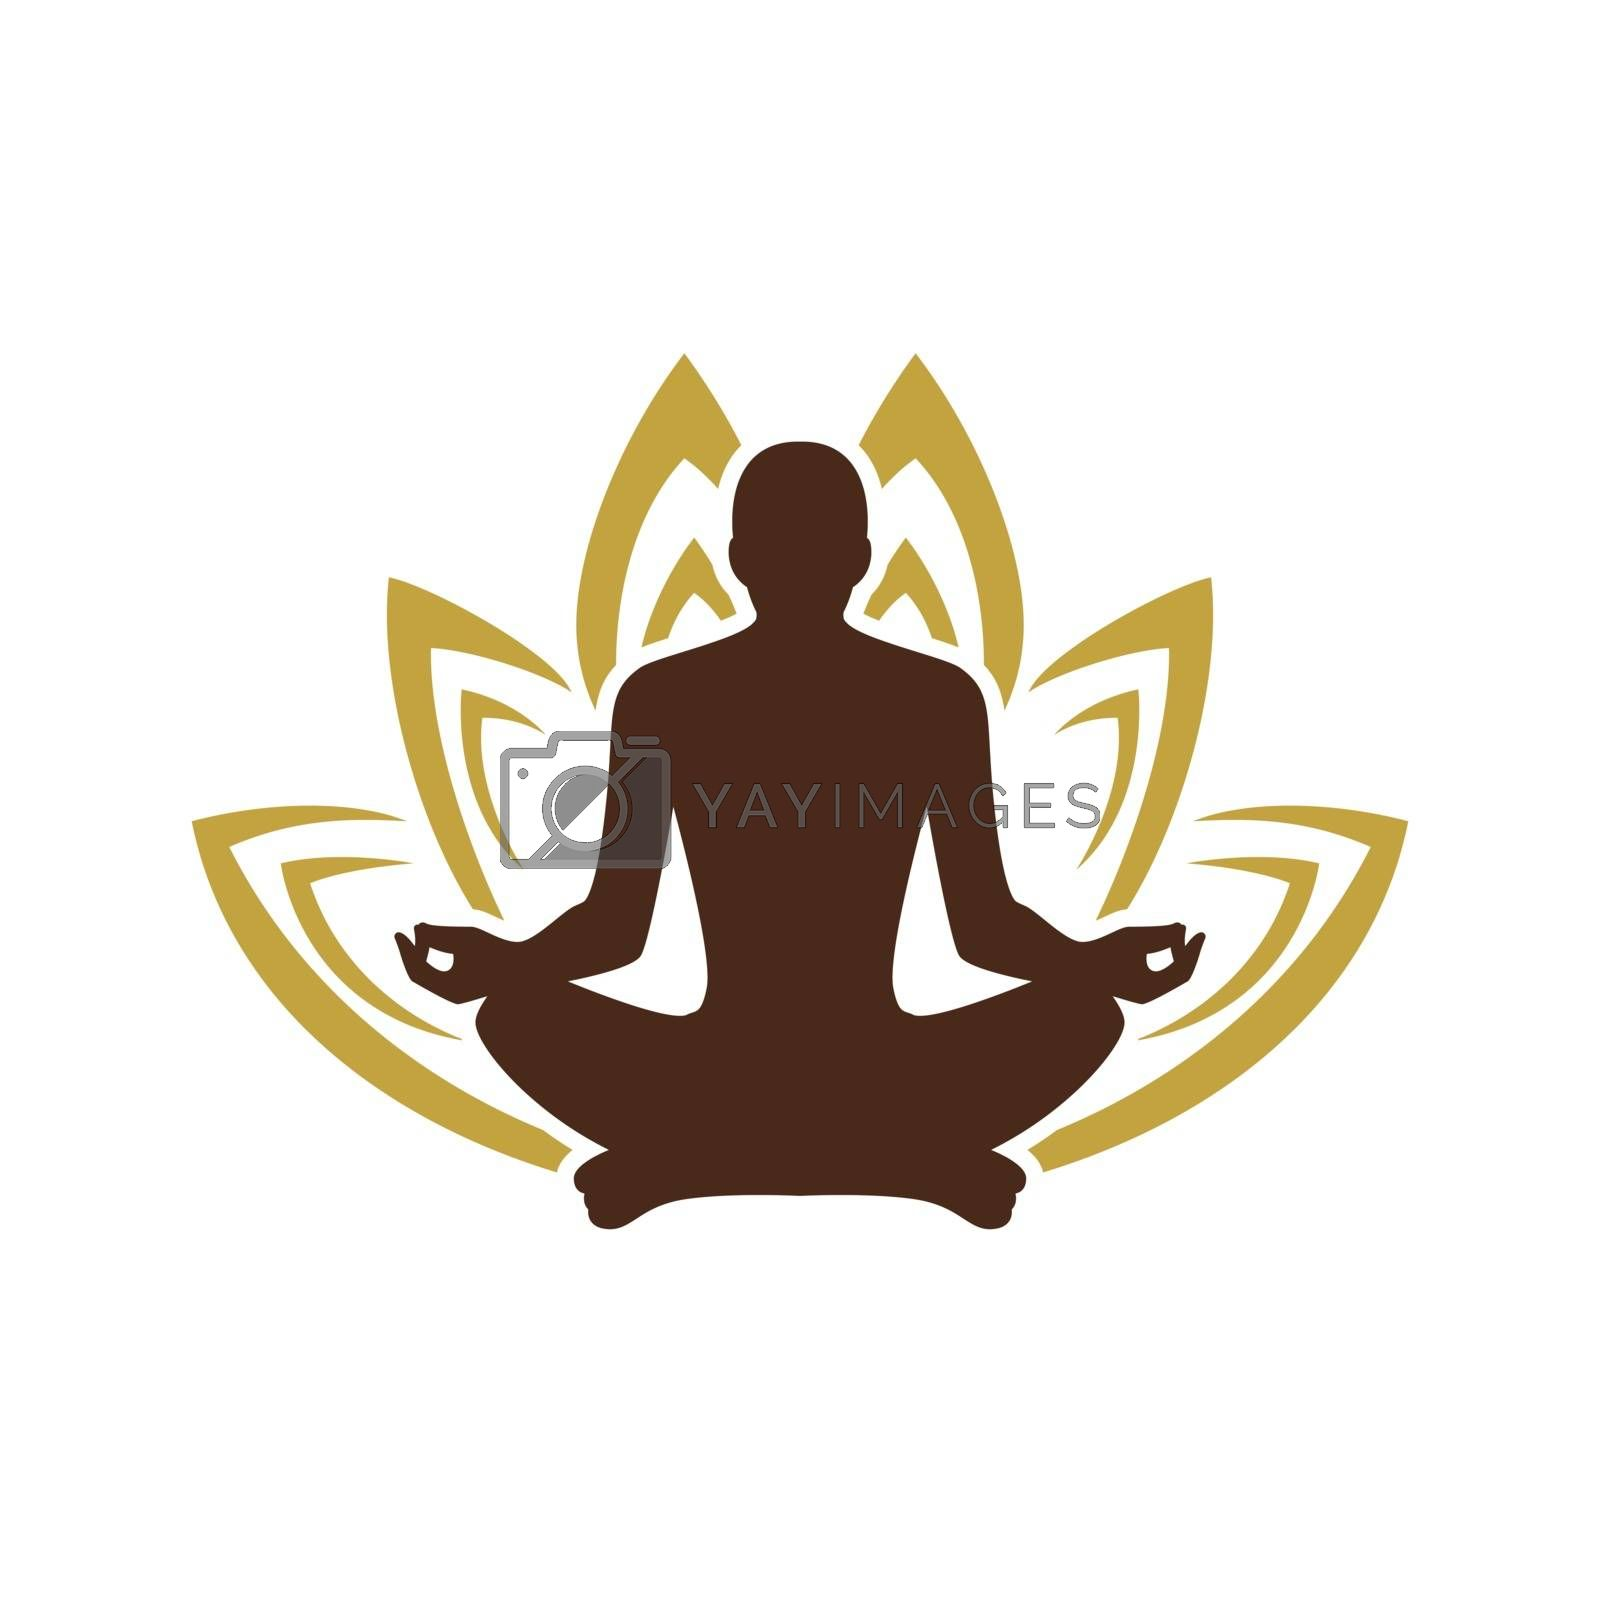 Yoga Logo Template Yoga Logo Design Stock Human Meditation In Lotus Flower Vector Illustration Royalty Free Stock Image Yayimages Royalty Free Stock Photos And Vectors